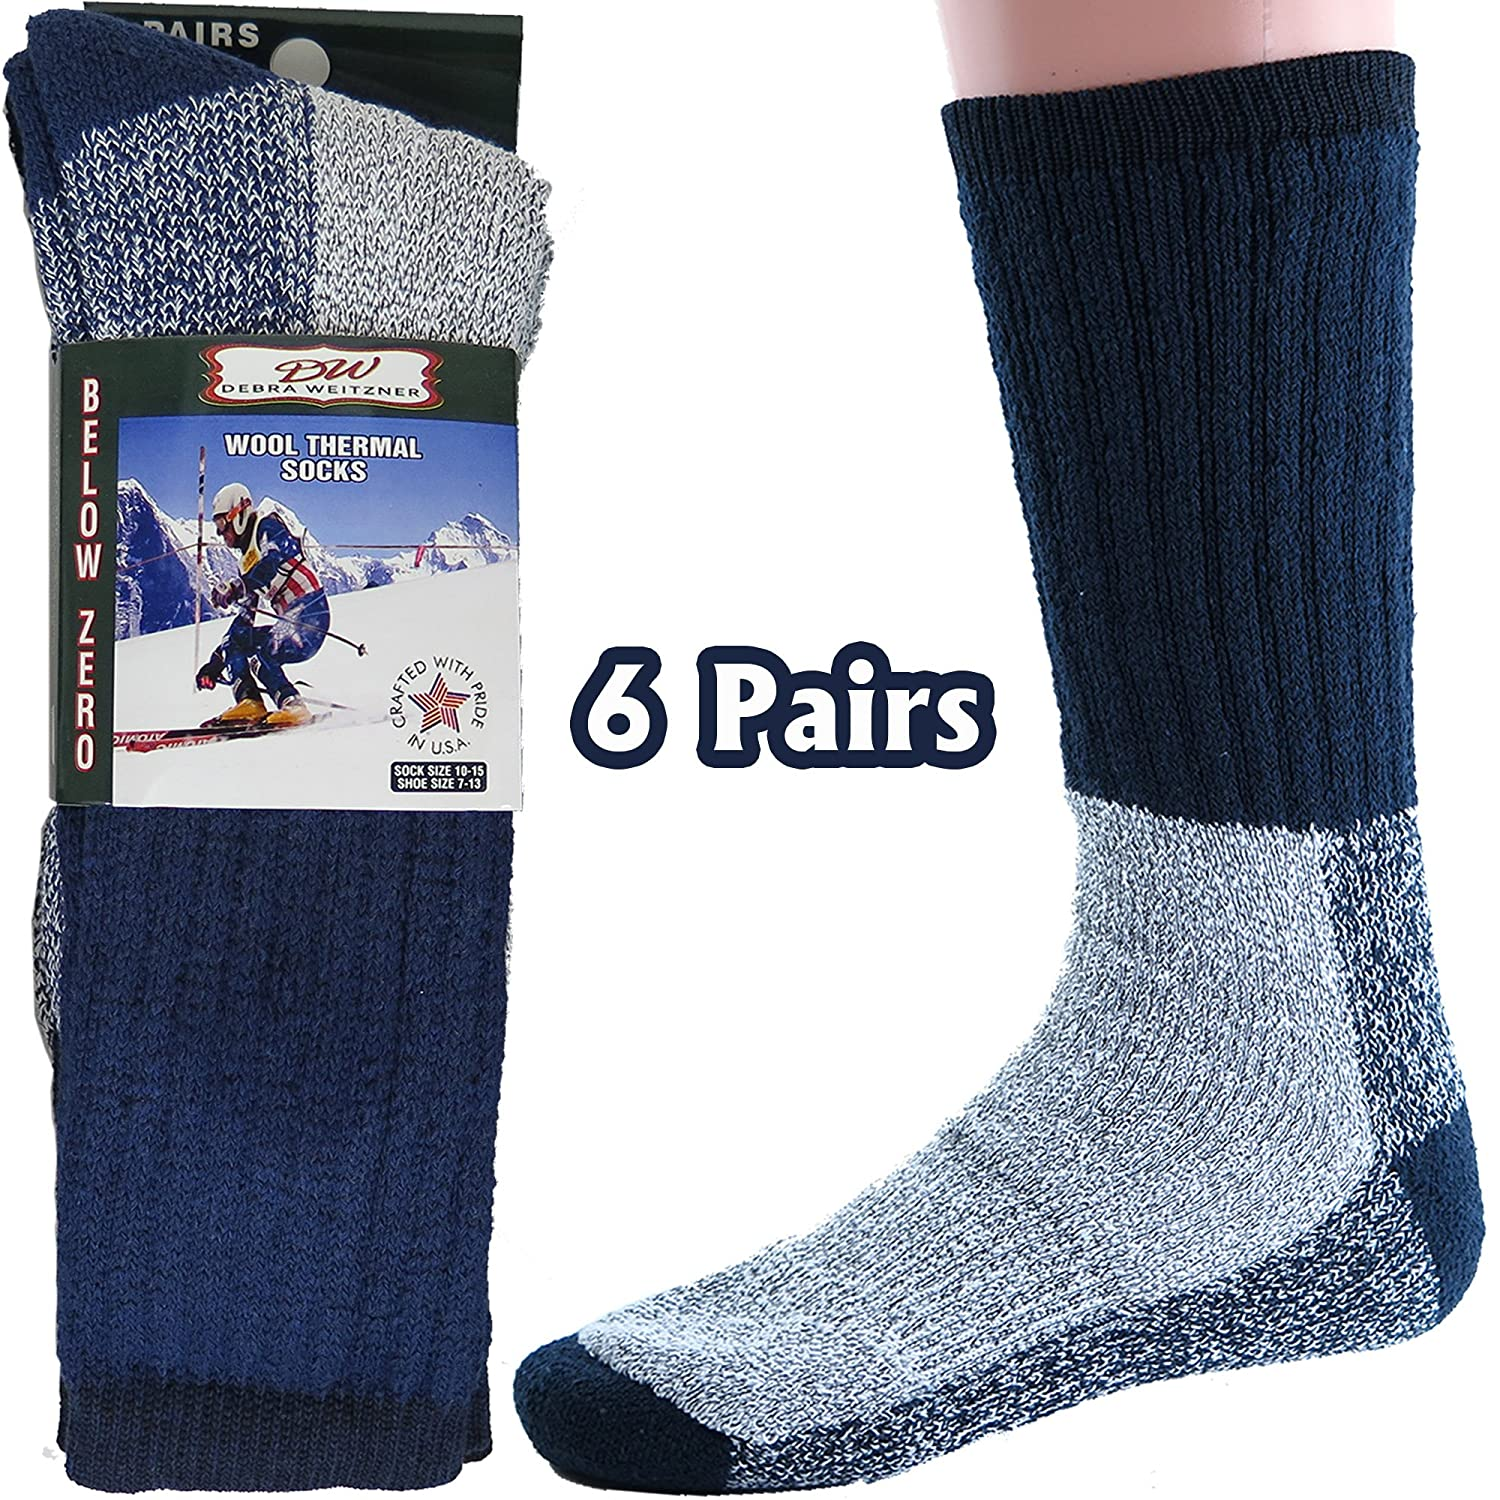 Mens Womens Thermal Socks Heavy Extreme Cold Weather Boot Socks 6-pack By DEBRA WEITZNER sck-thr-t9-6pk-parent